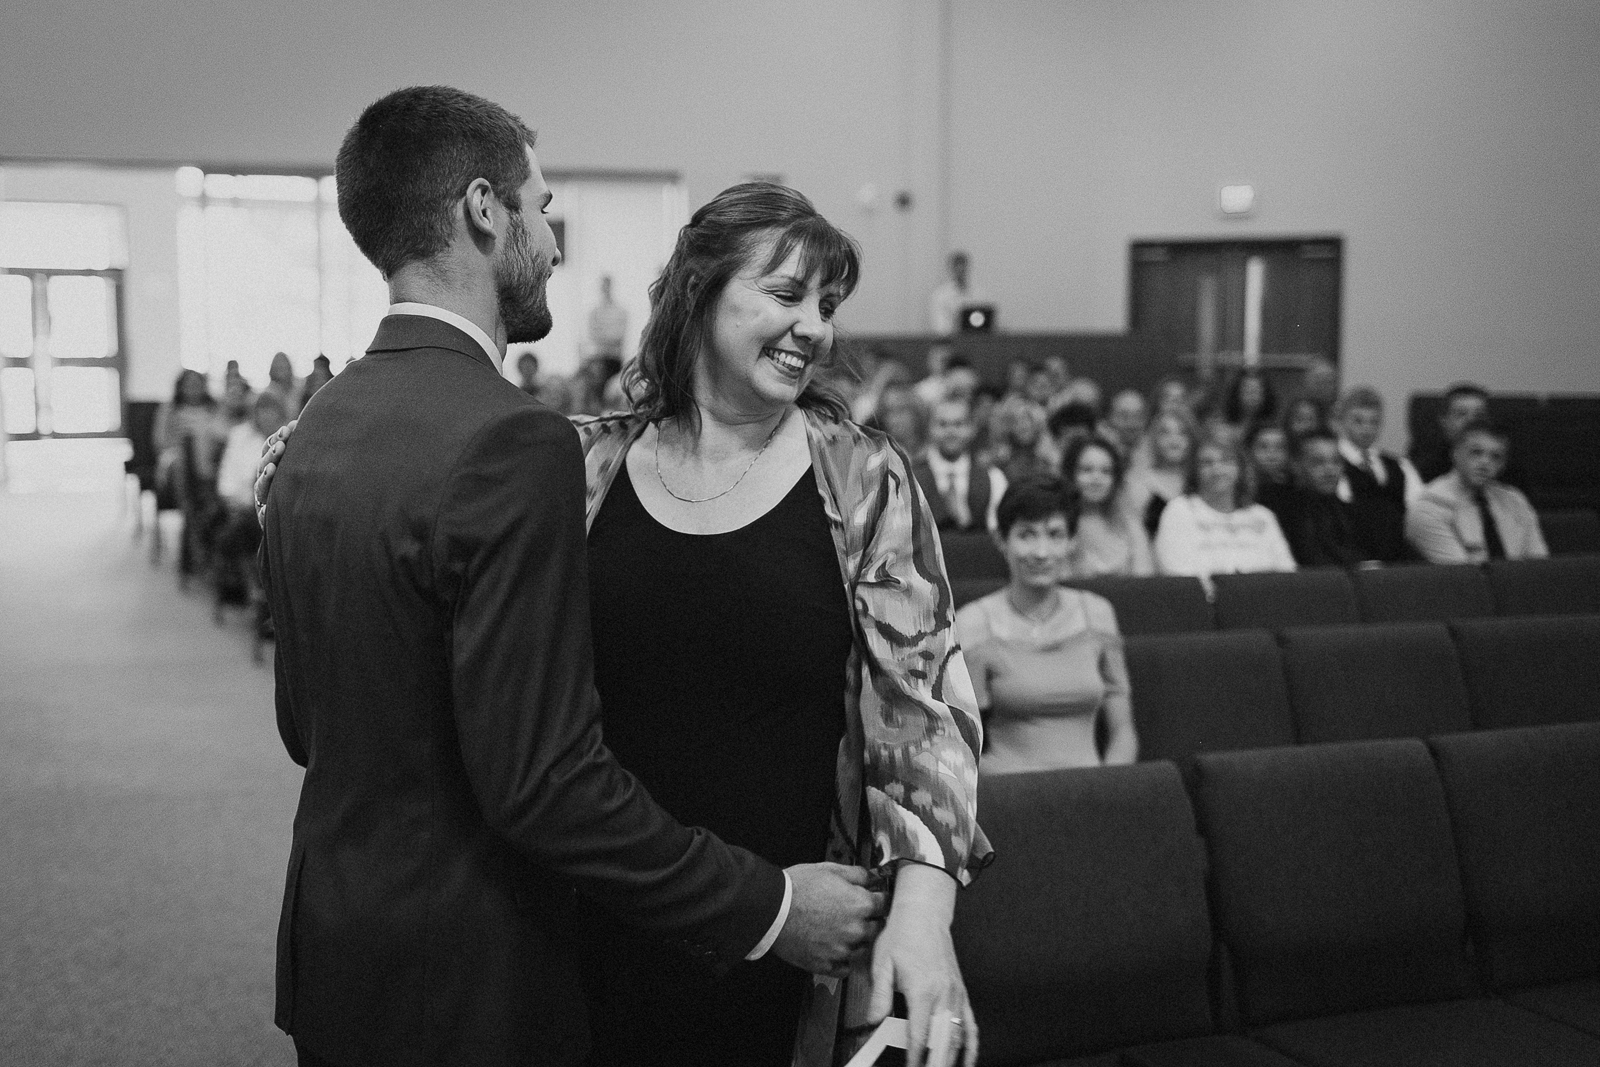 luke-and-jessica-wedding-292.jpg